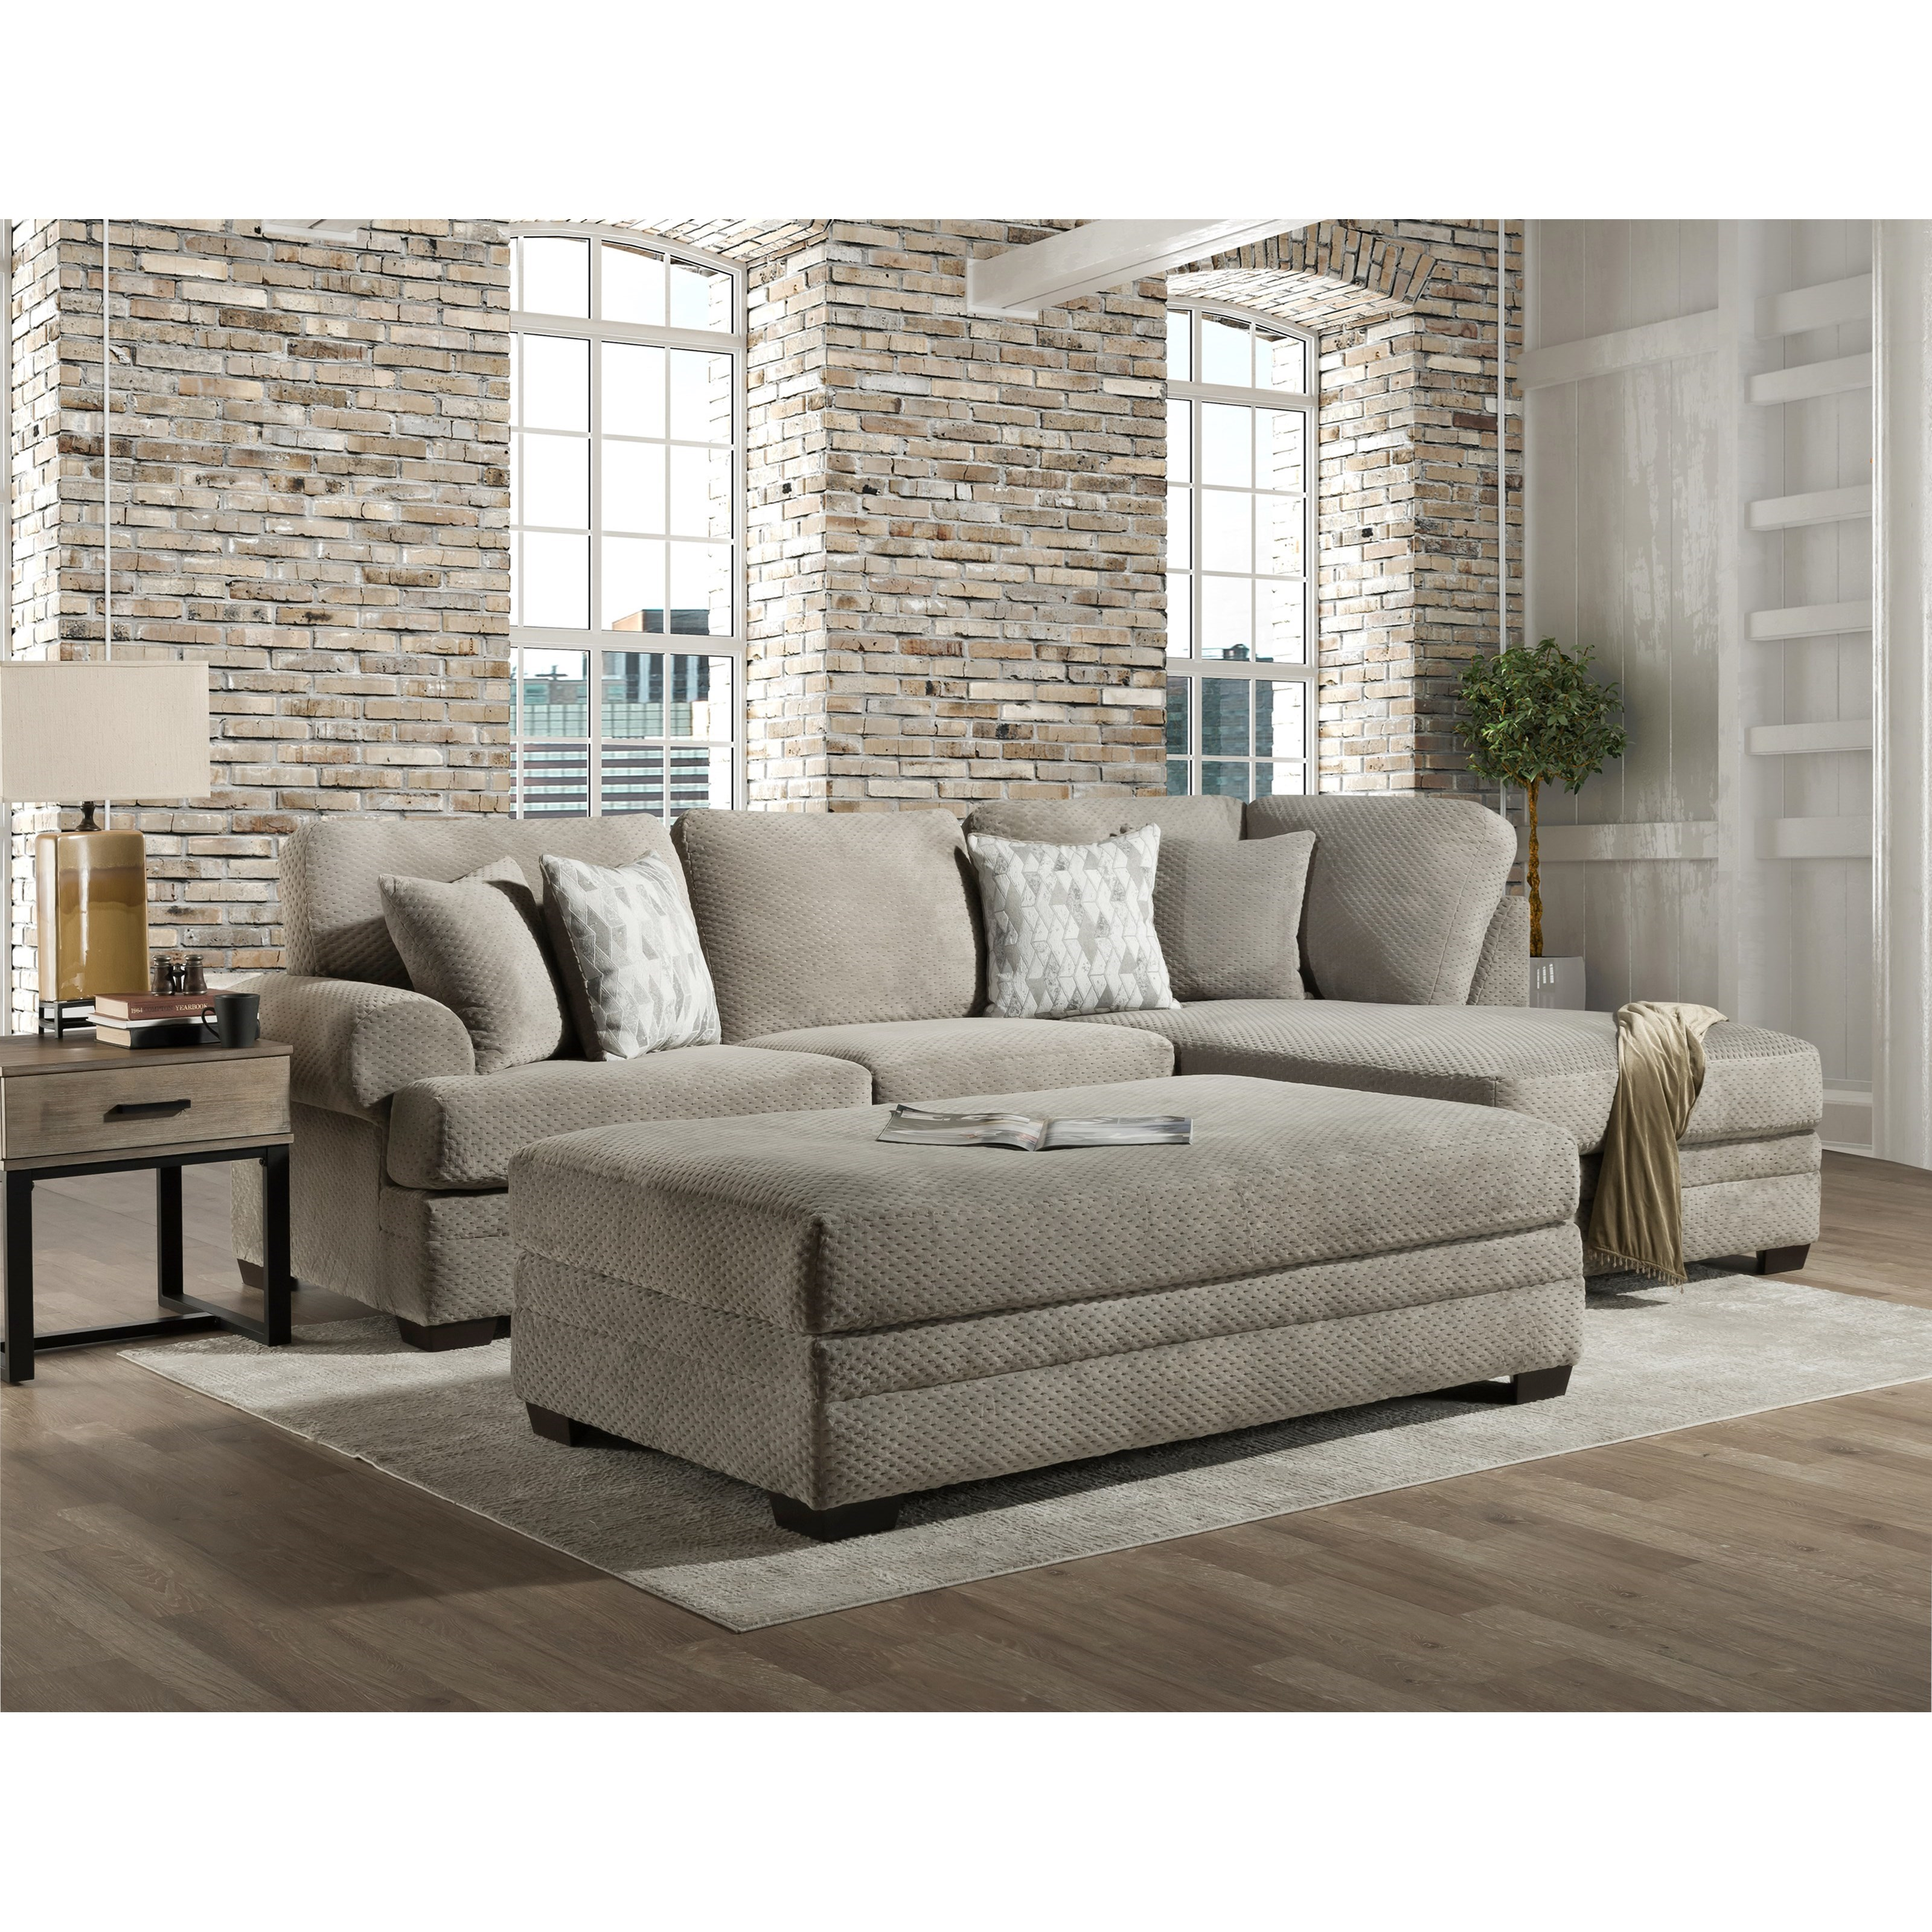 7000 Three Seat Sectional with Rounded Arms by Peak Living at Steger's Furniture